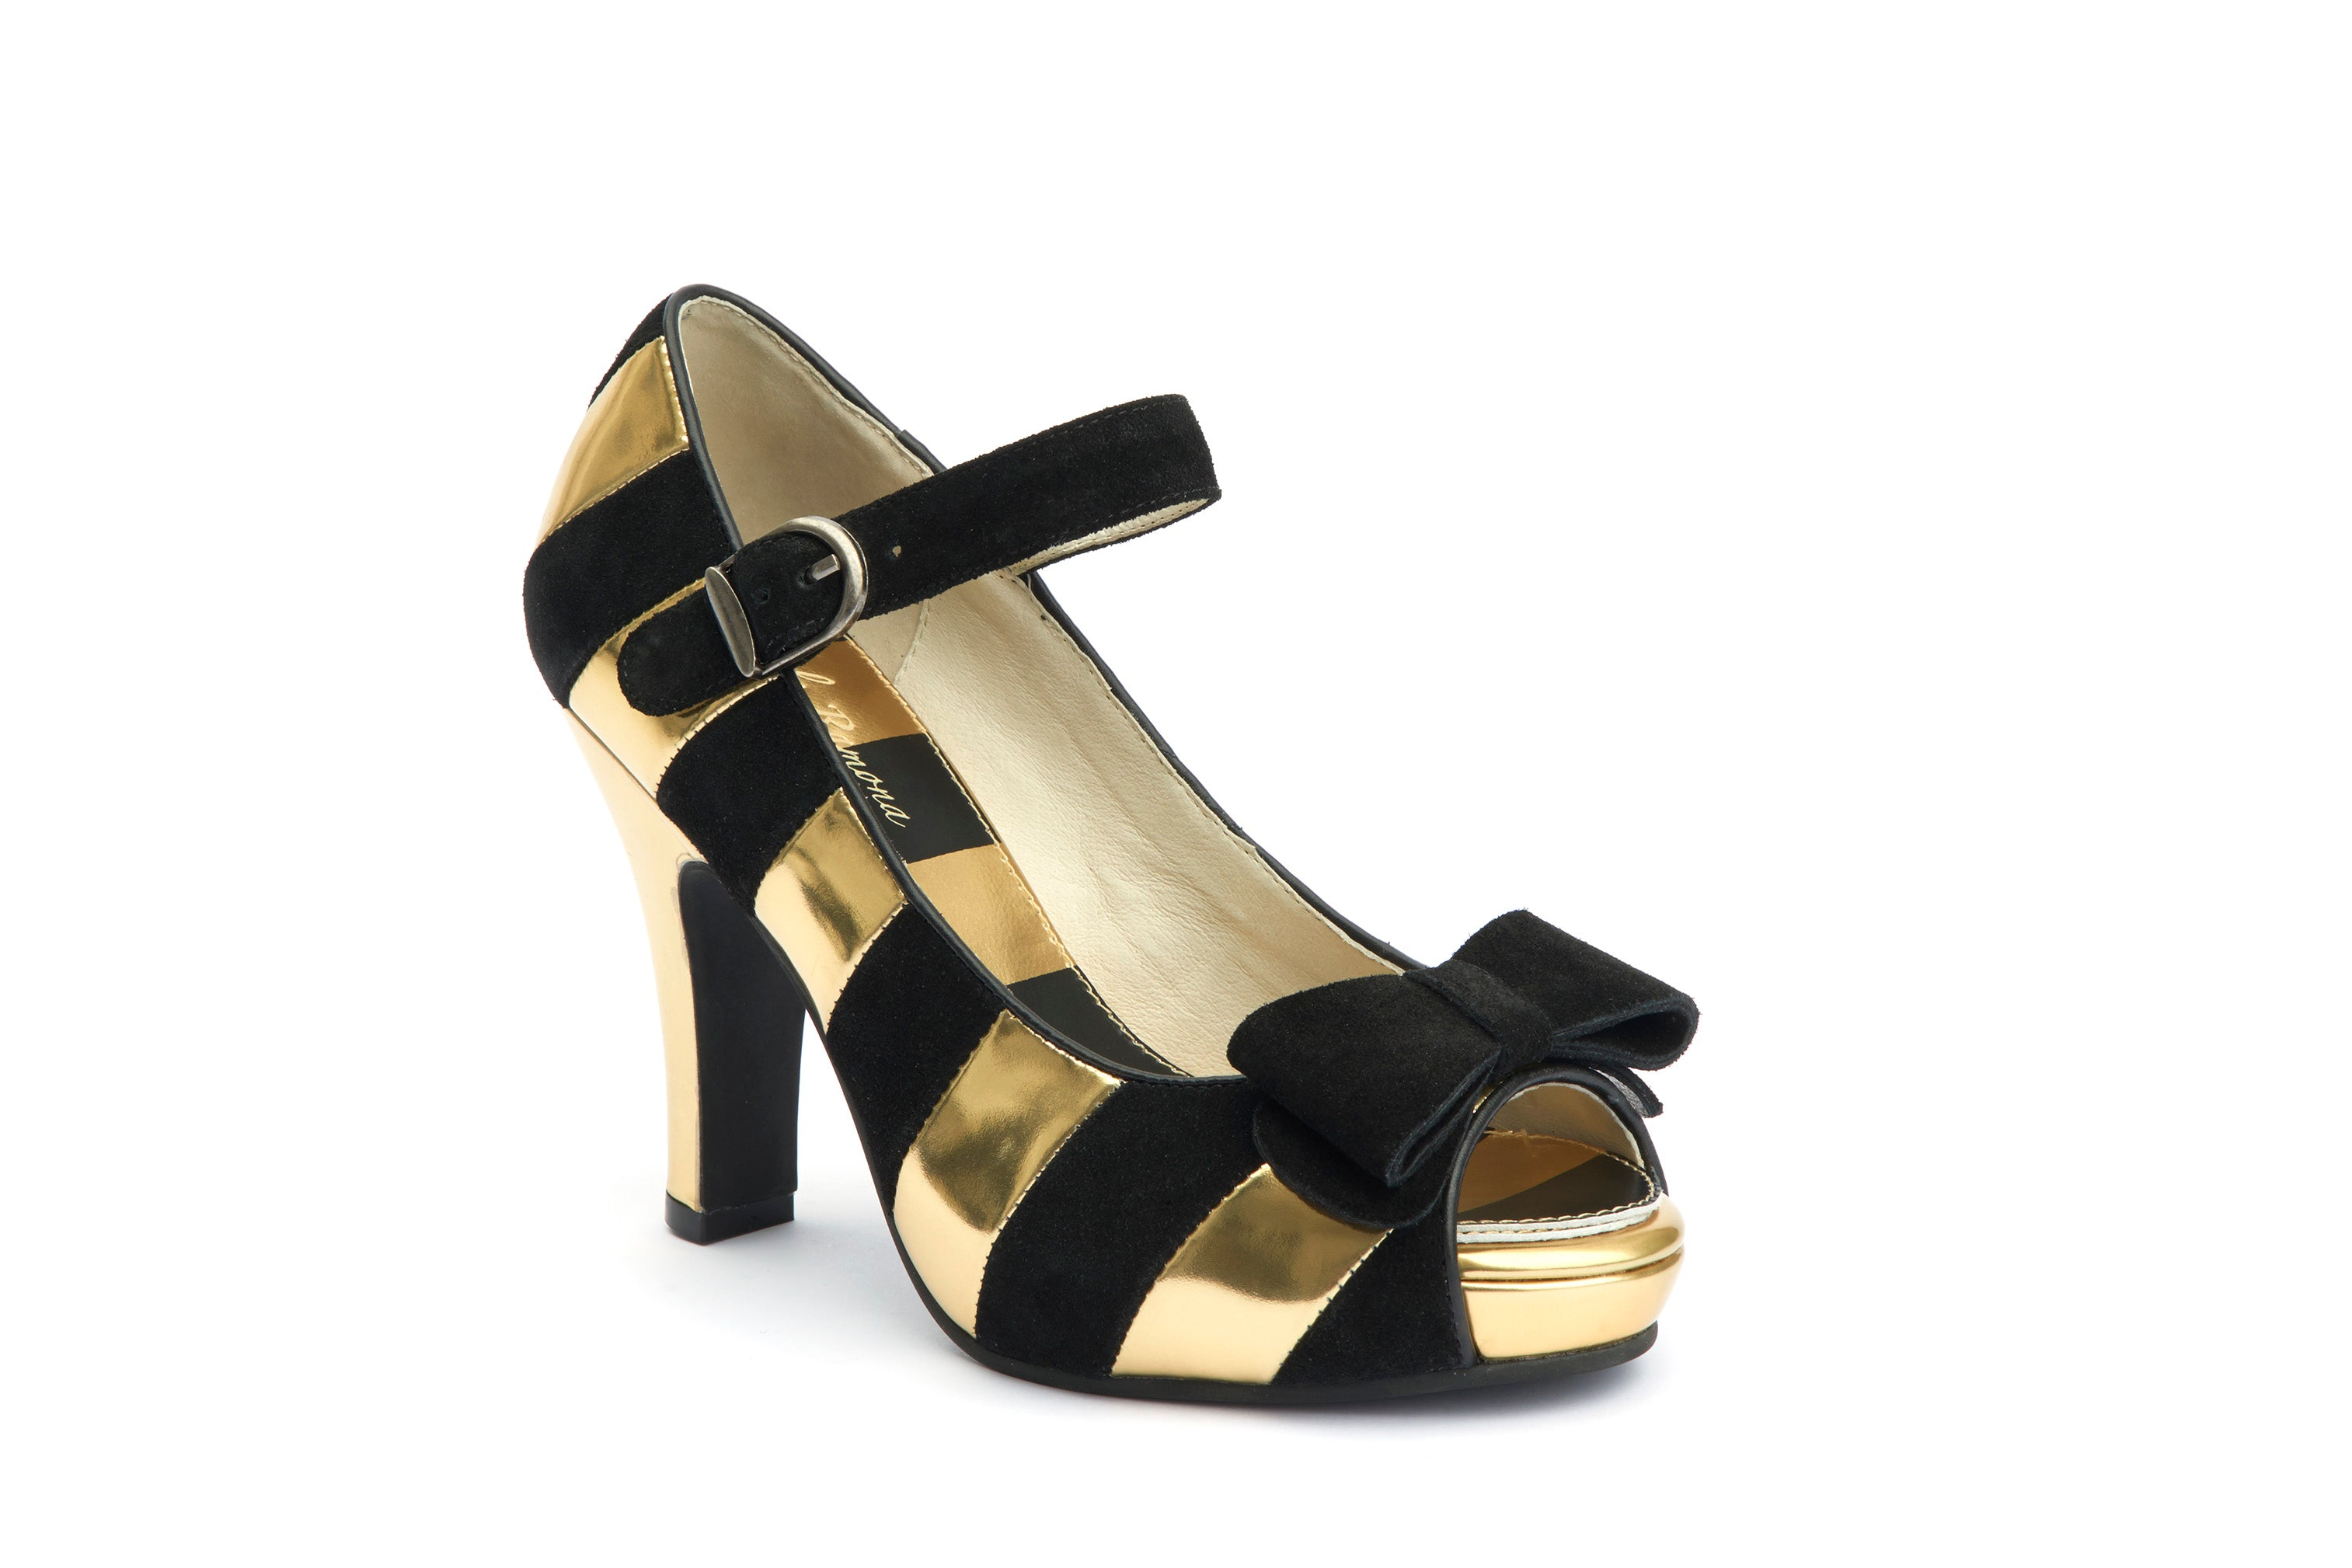 Pumps Comfy High Heels Angie Stripy Black Gold - Lola Ramona - Bombus